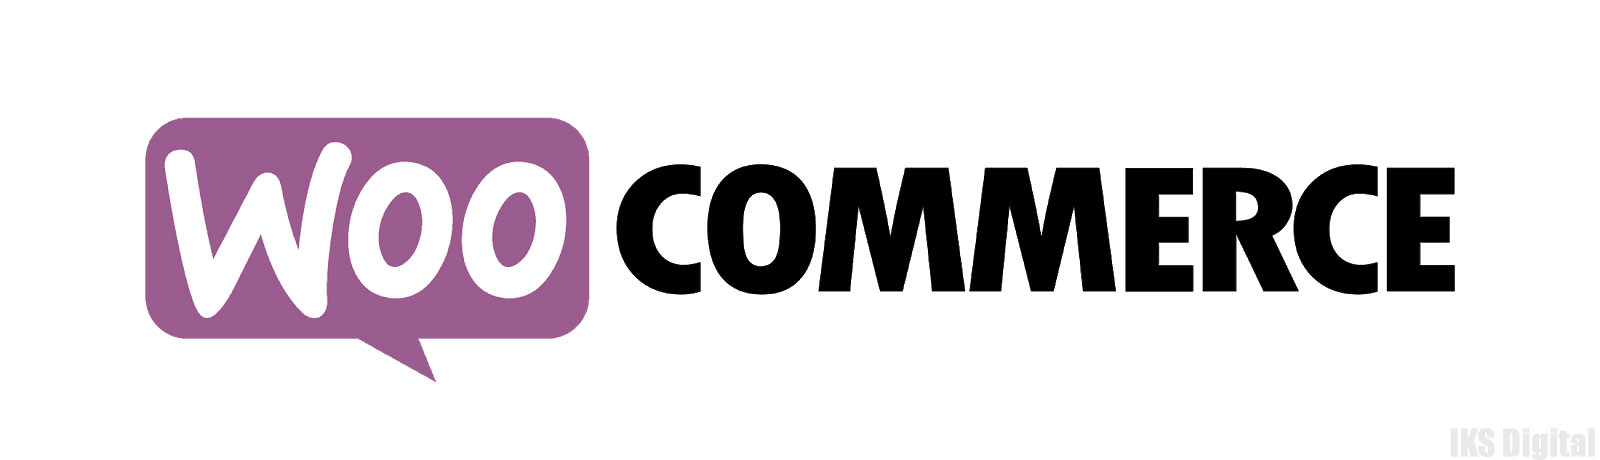 WooCommerce is top Open Source Ecommerce Platforms for 2021